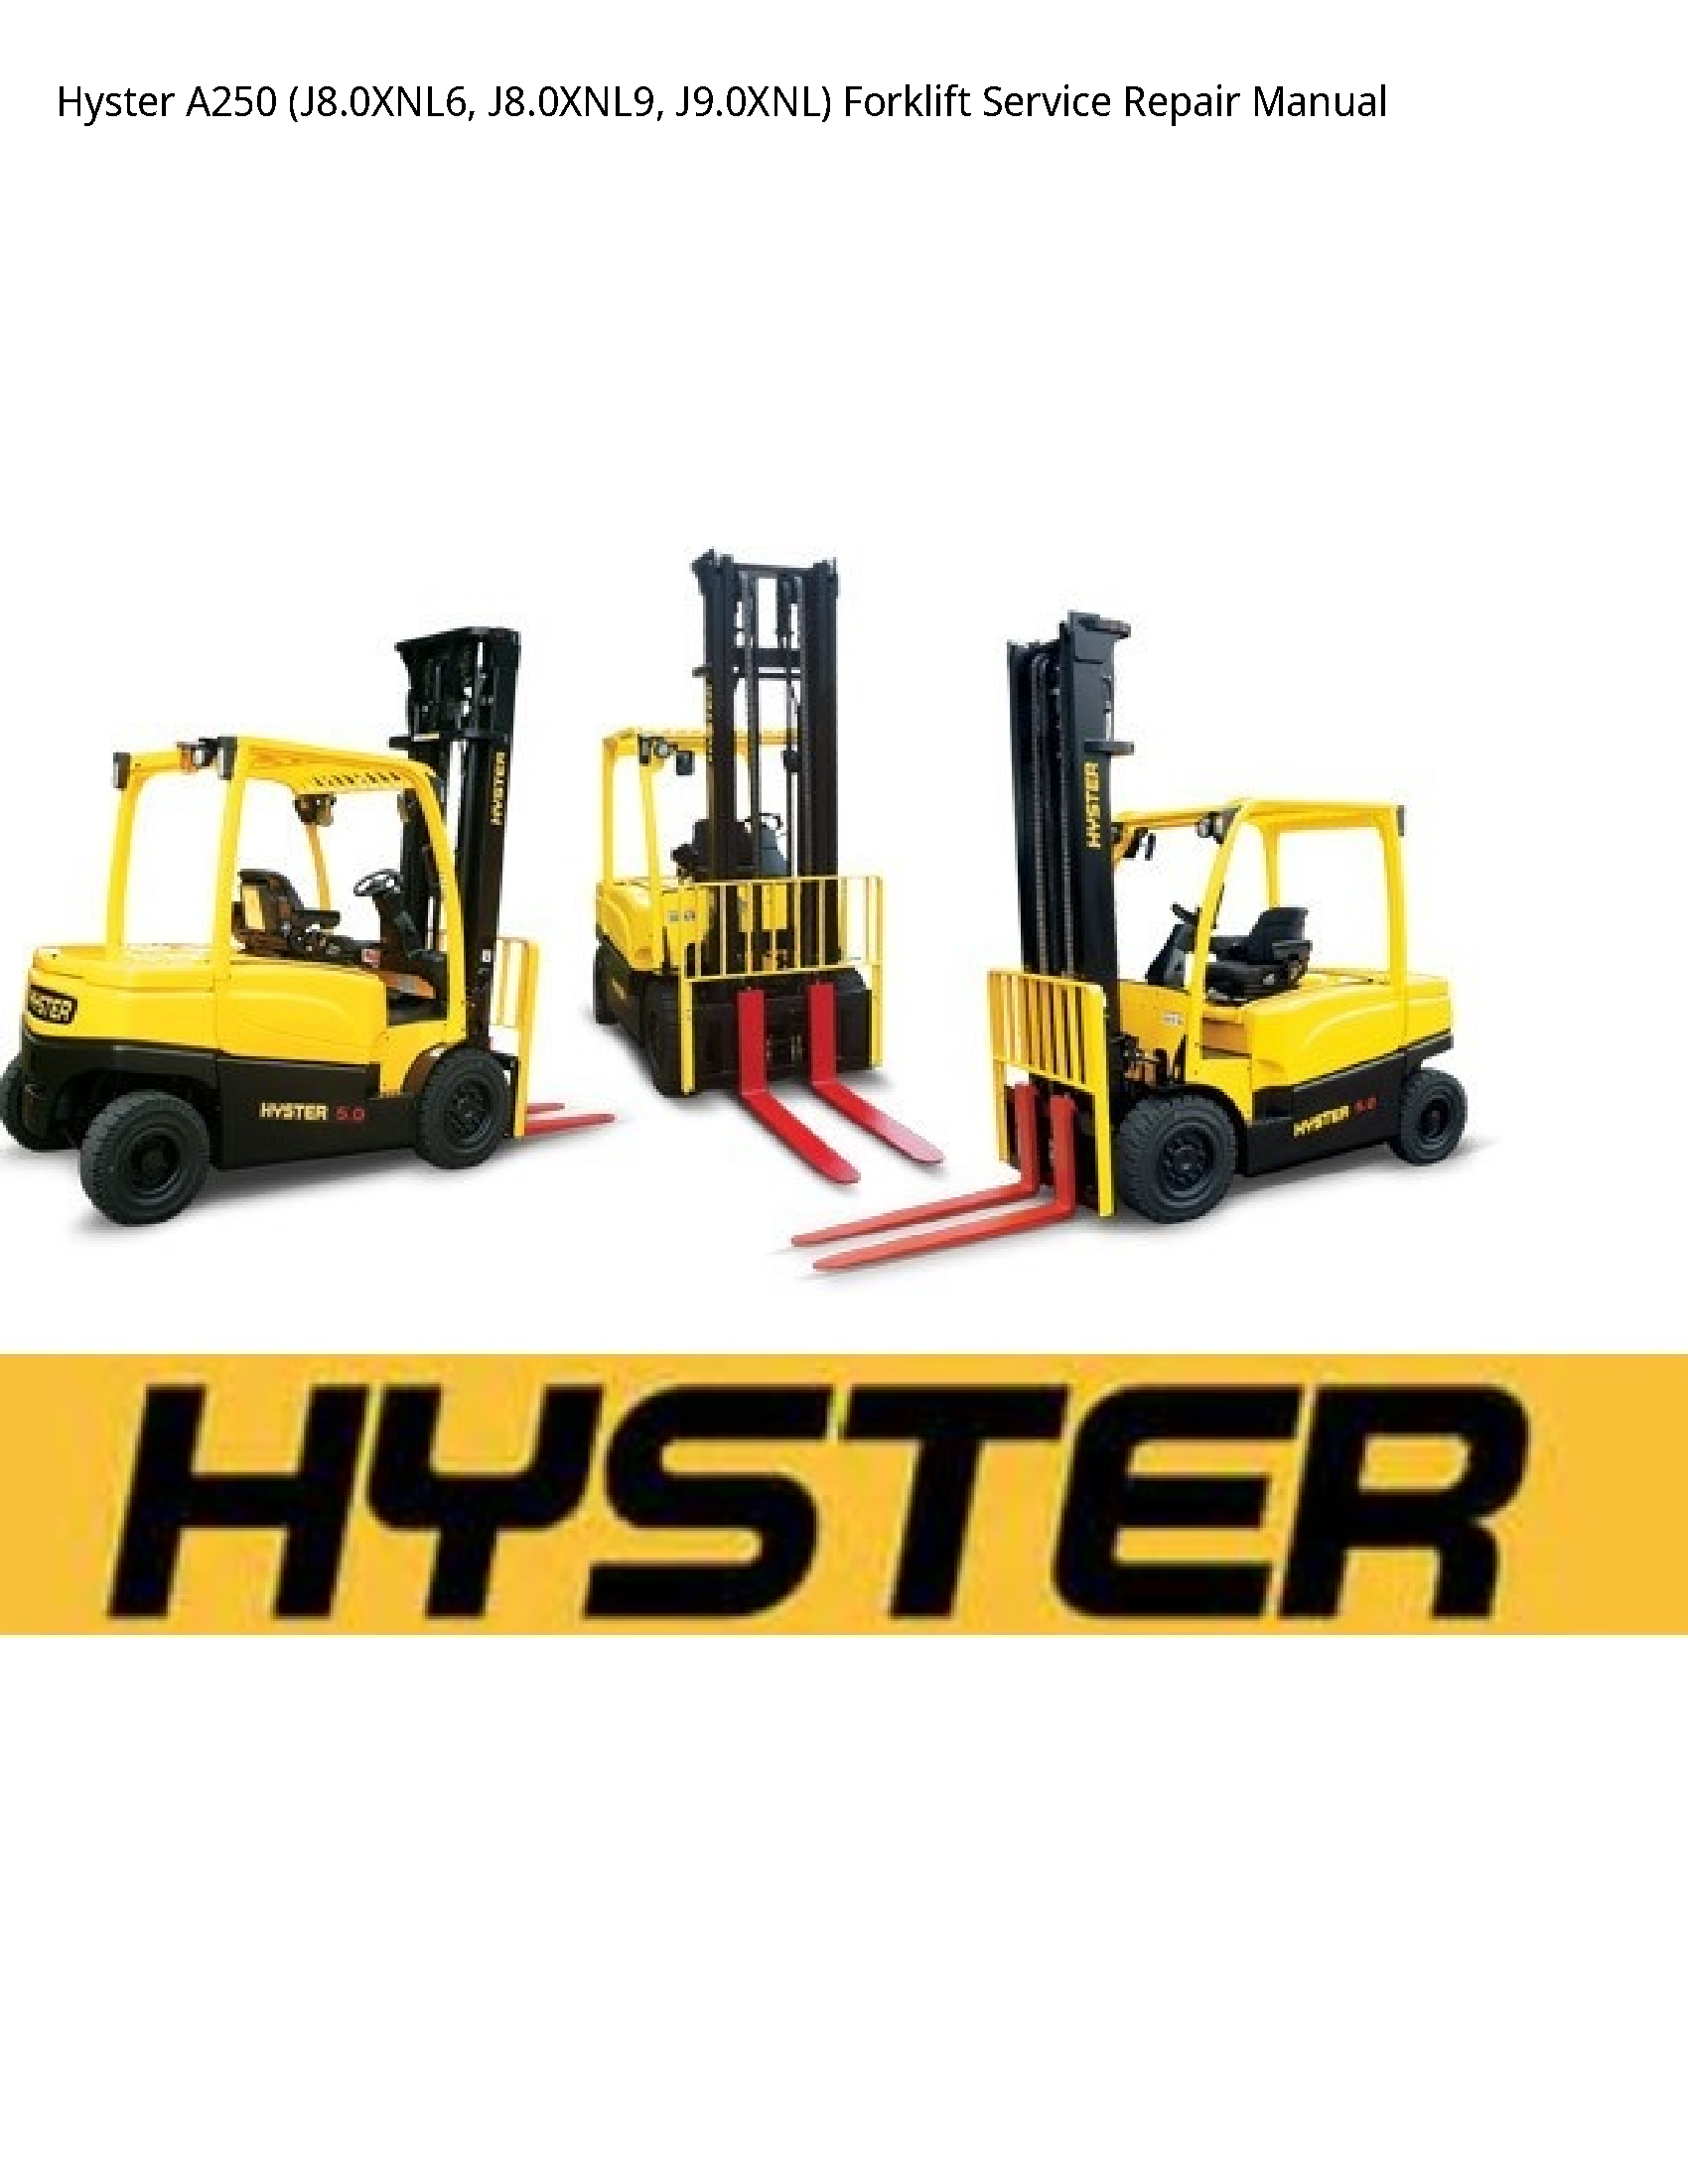 Hyster A250 Forklift manual